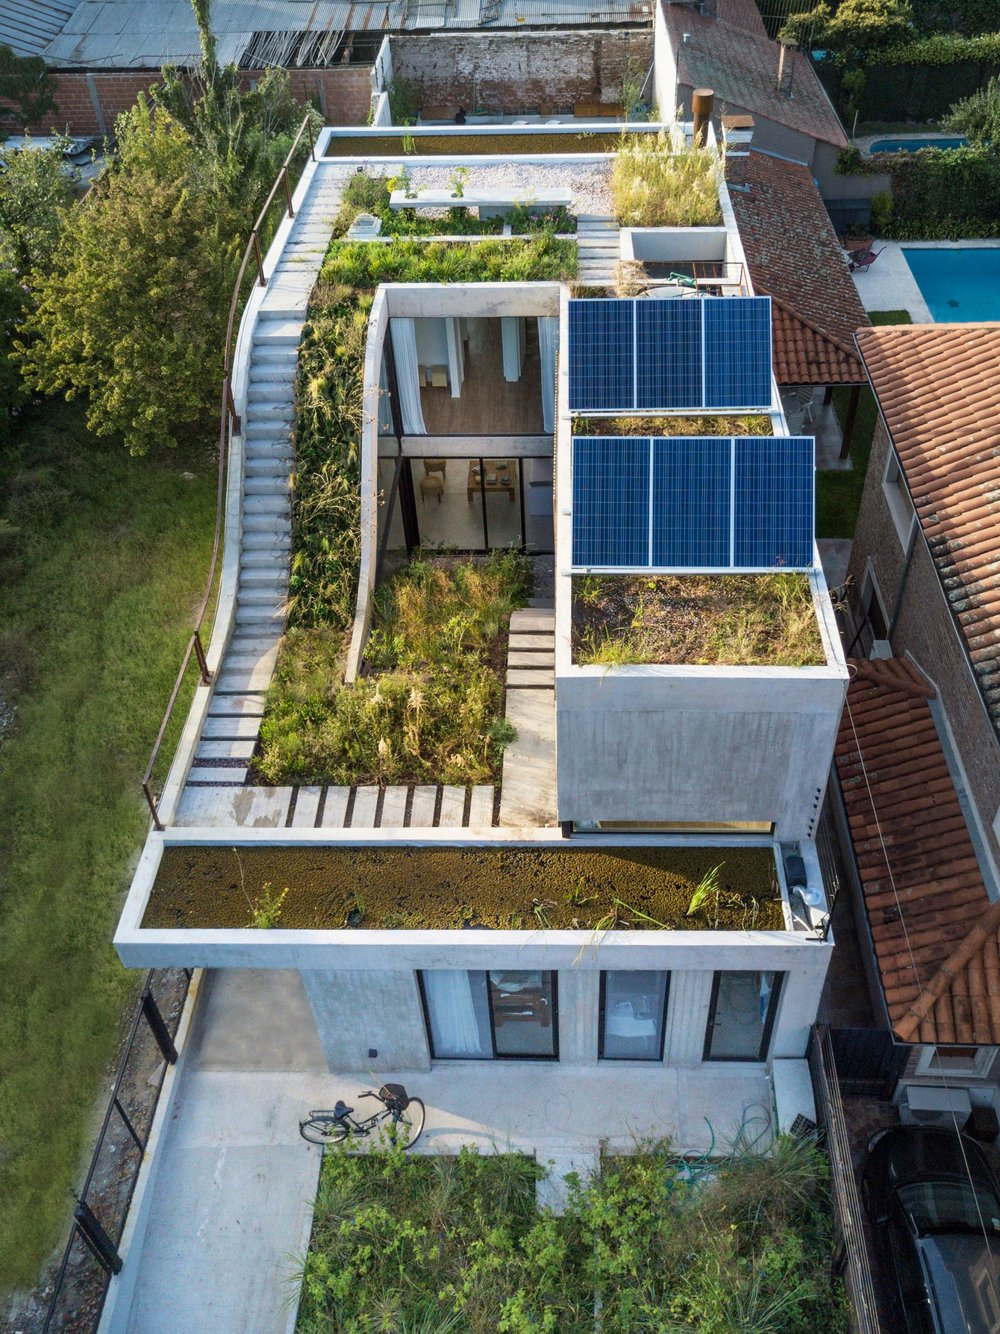 house-memo-bam-arquitectura-architecture-residential-houses-buenos-aires-argentina-_dezeen_2364_col_0-1704x2273 (1).jpg